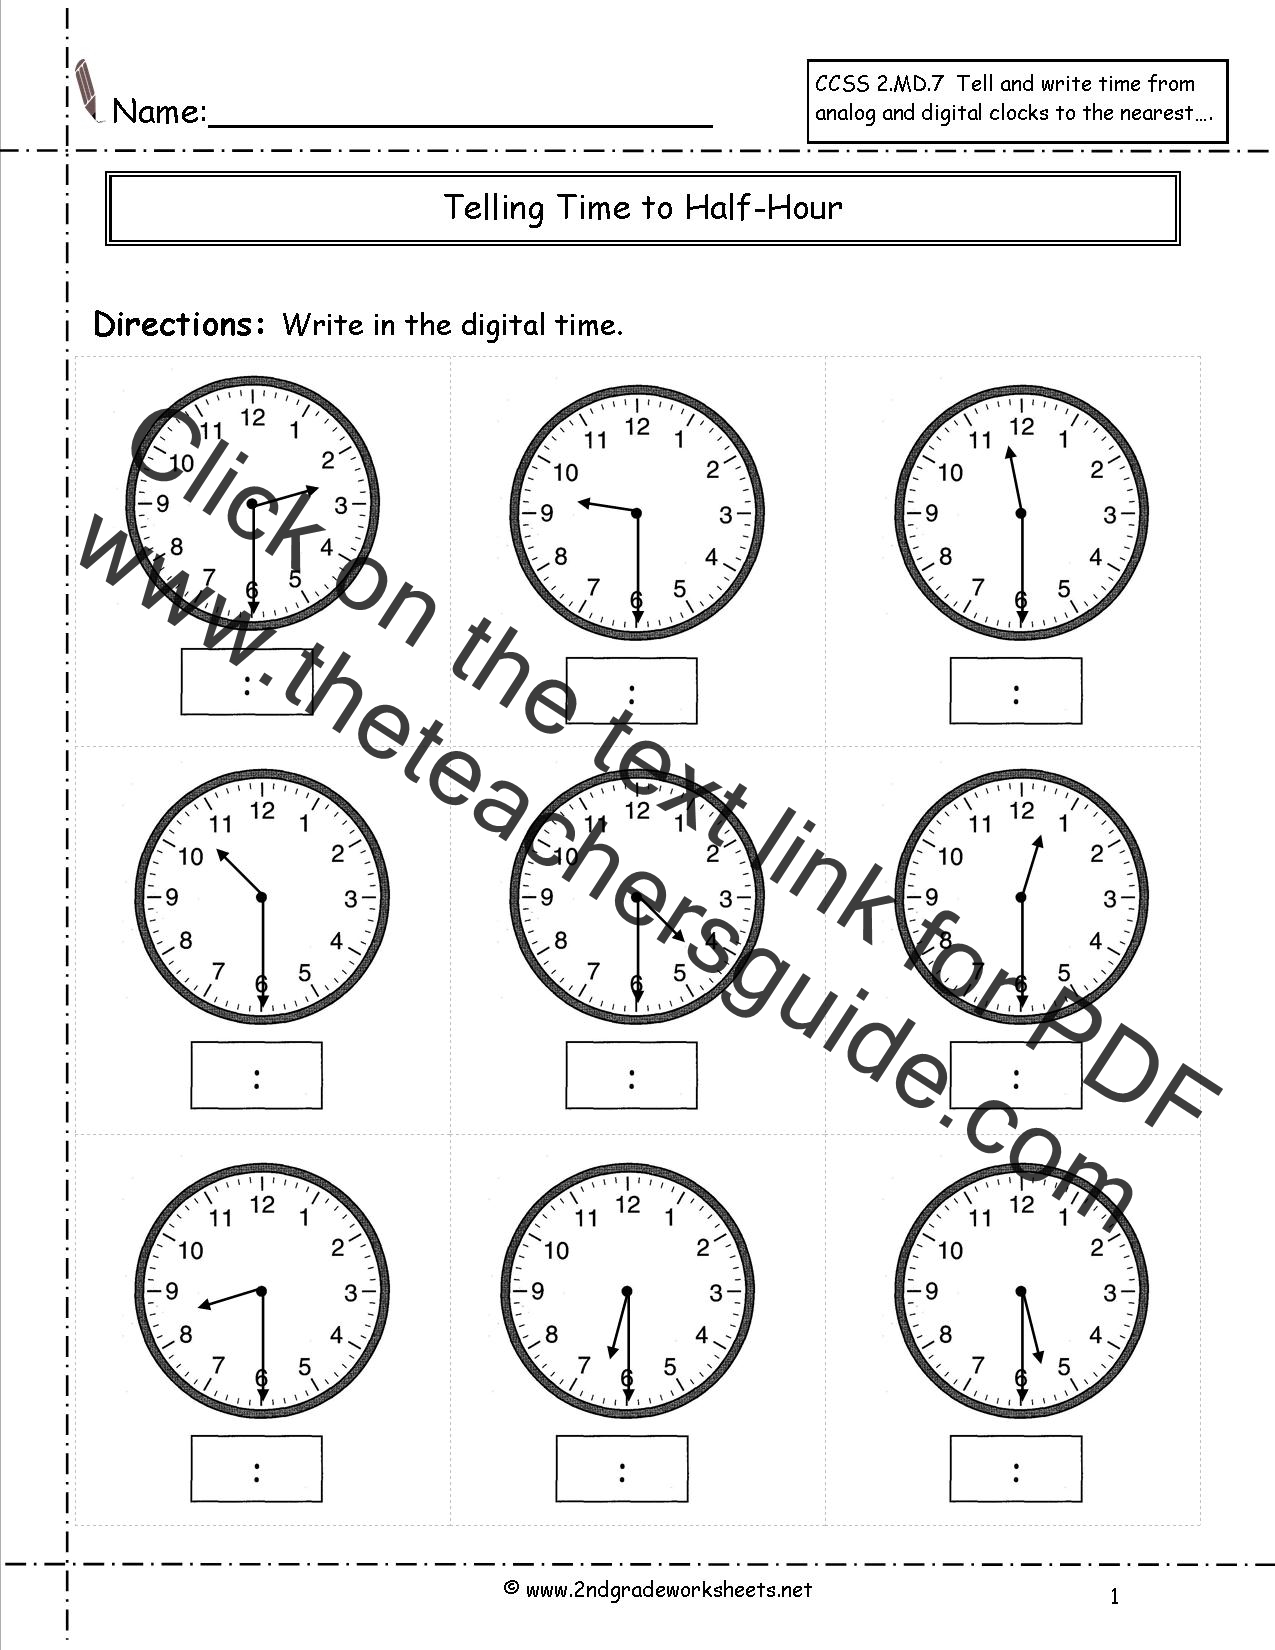 Worksheets Second Grade Time Worksheets telling and writing time worksheets to nearest half hour worksheet